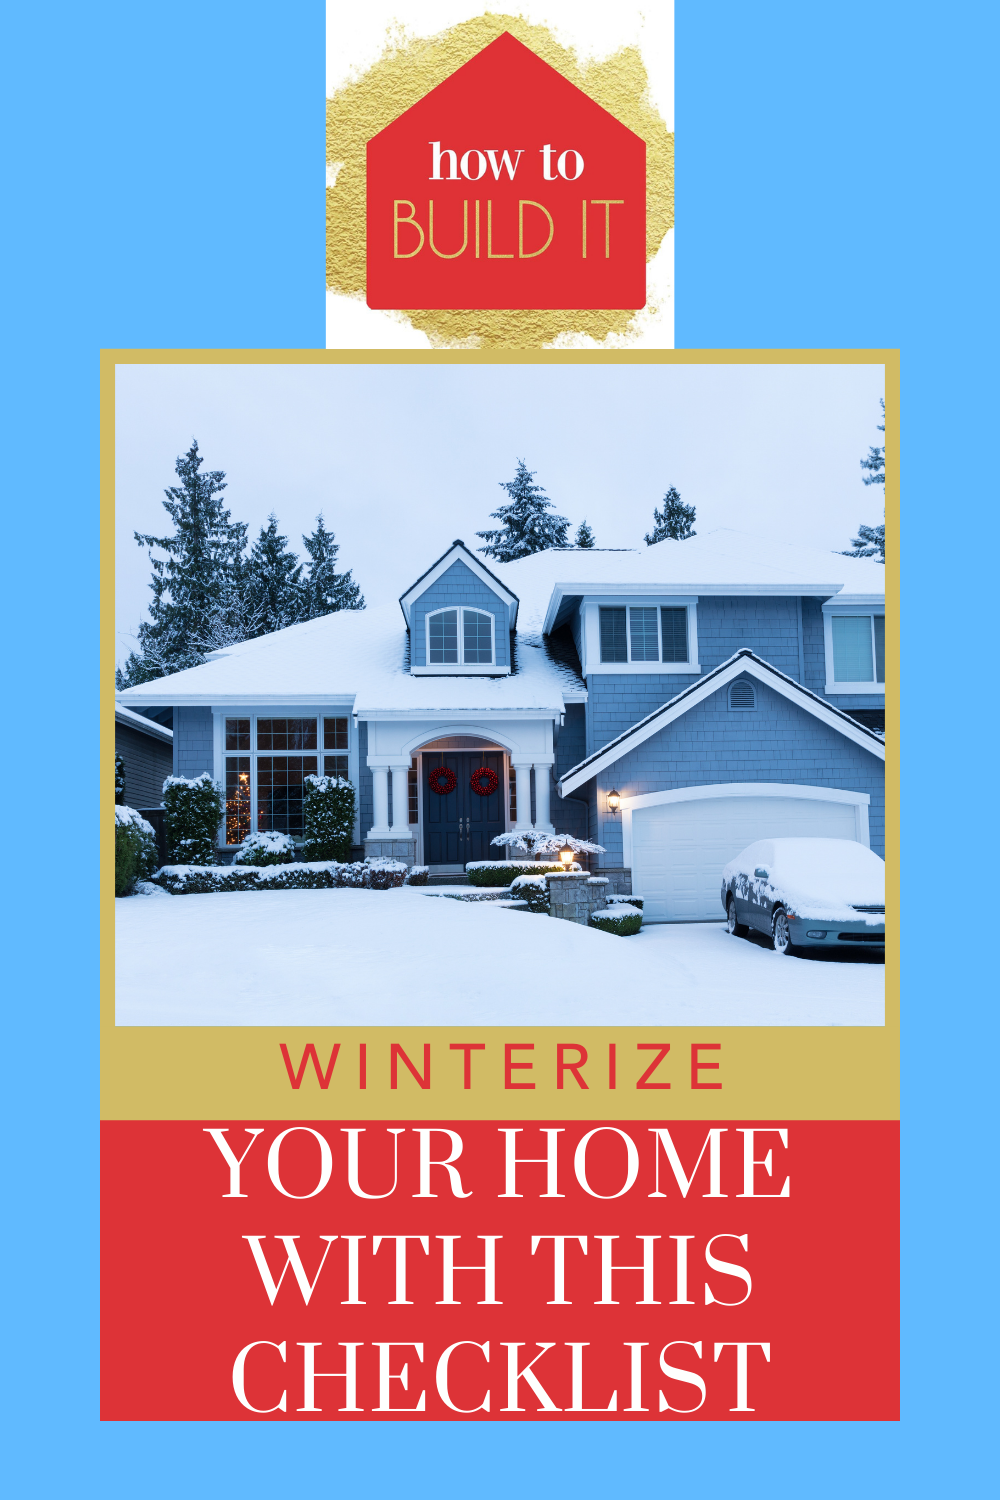 Howtobuildit.com will make you into a certified handyman! Learn how to fix any issue in your home--big or small. Find out easy ways you can get your home safe and ready for winter!